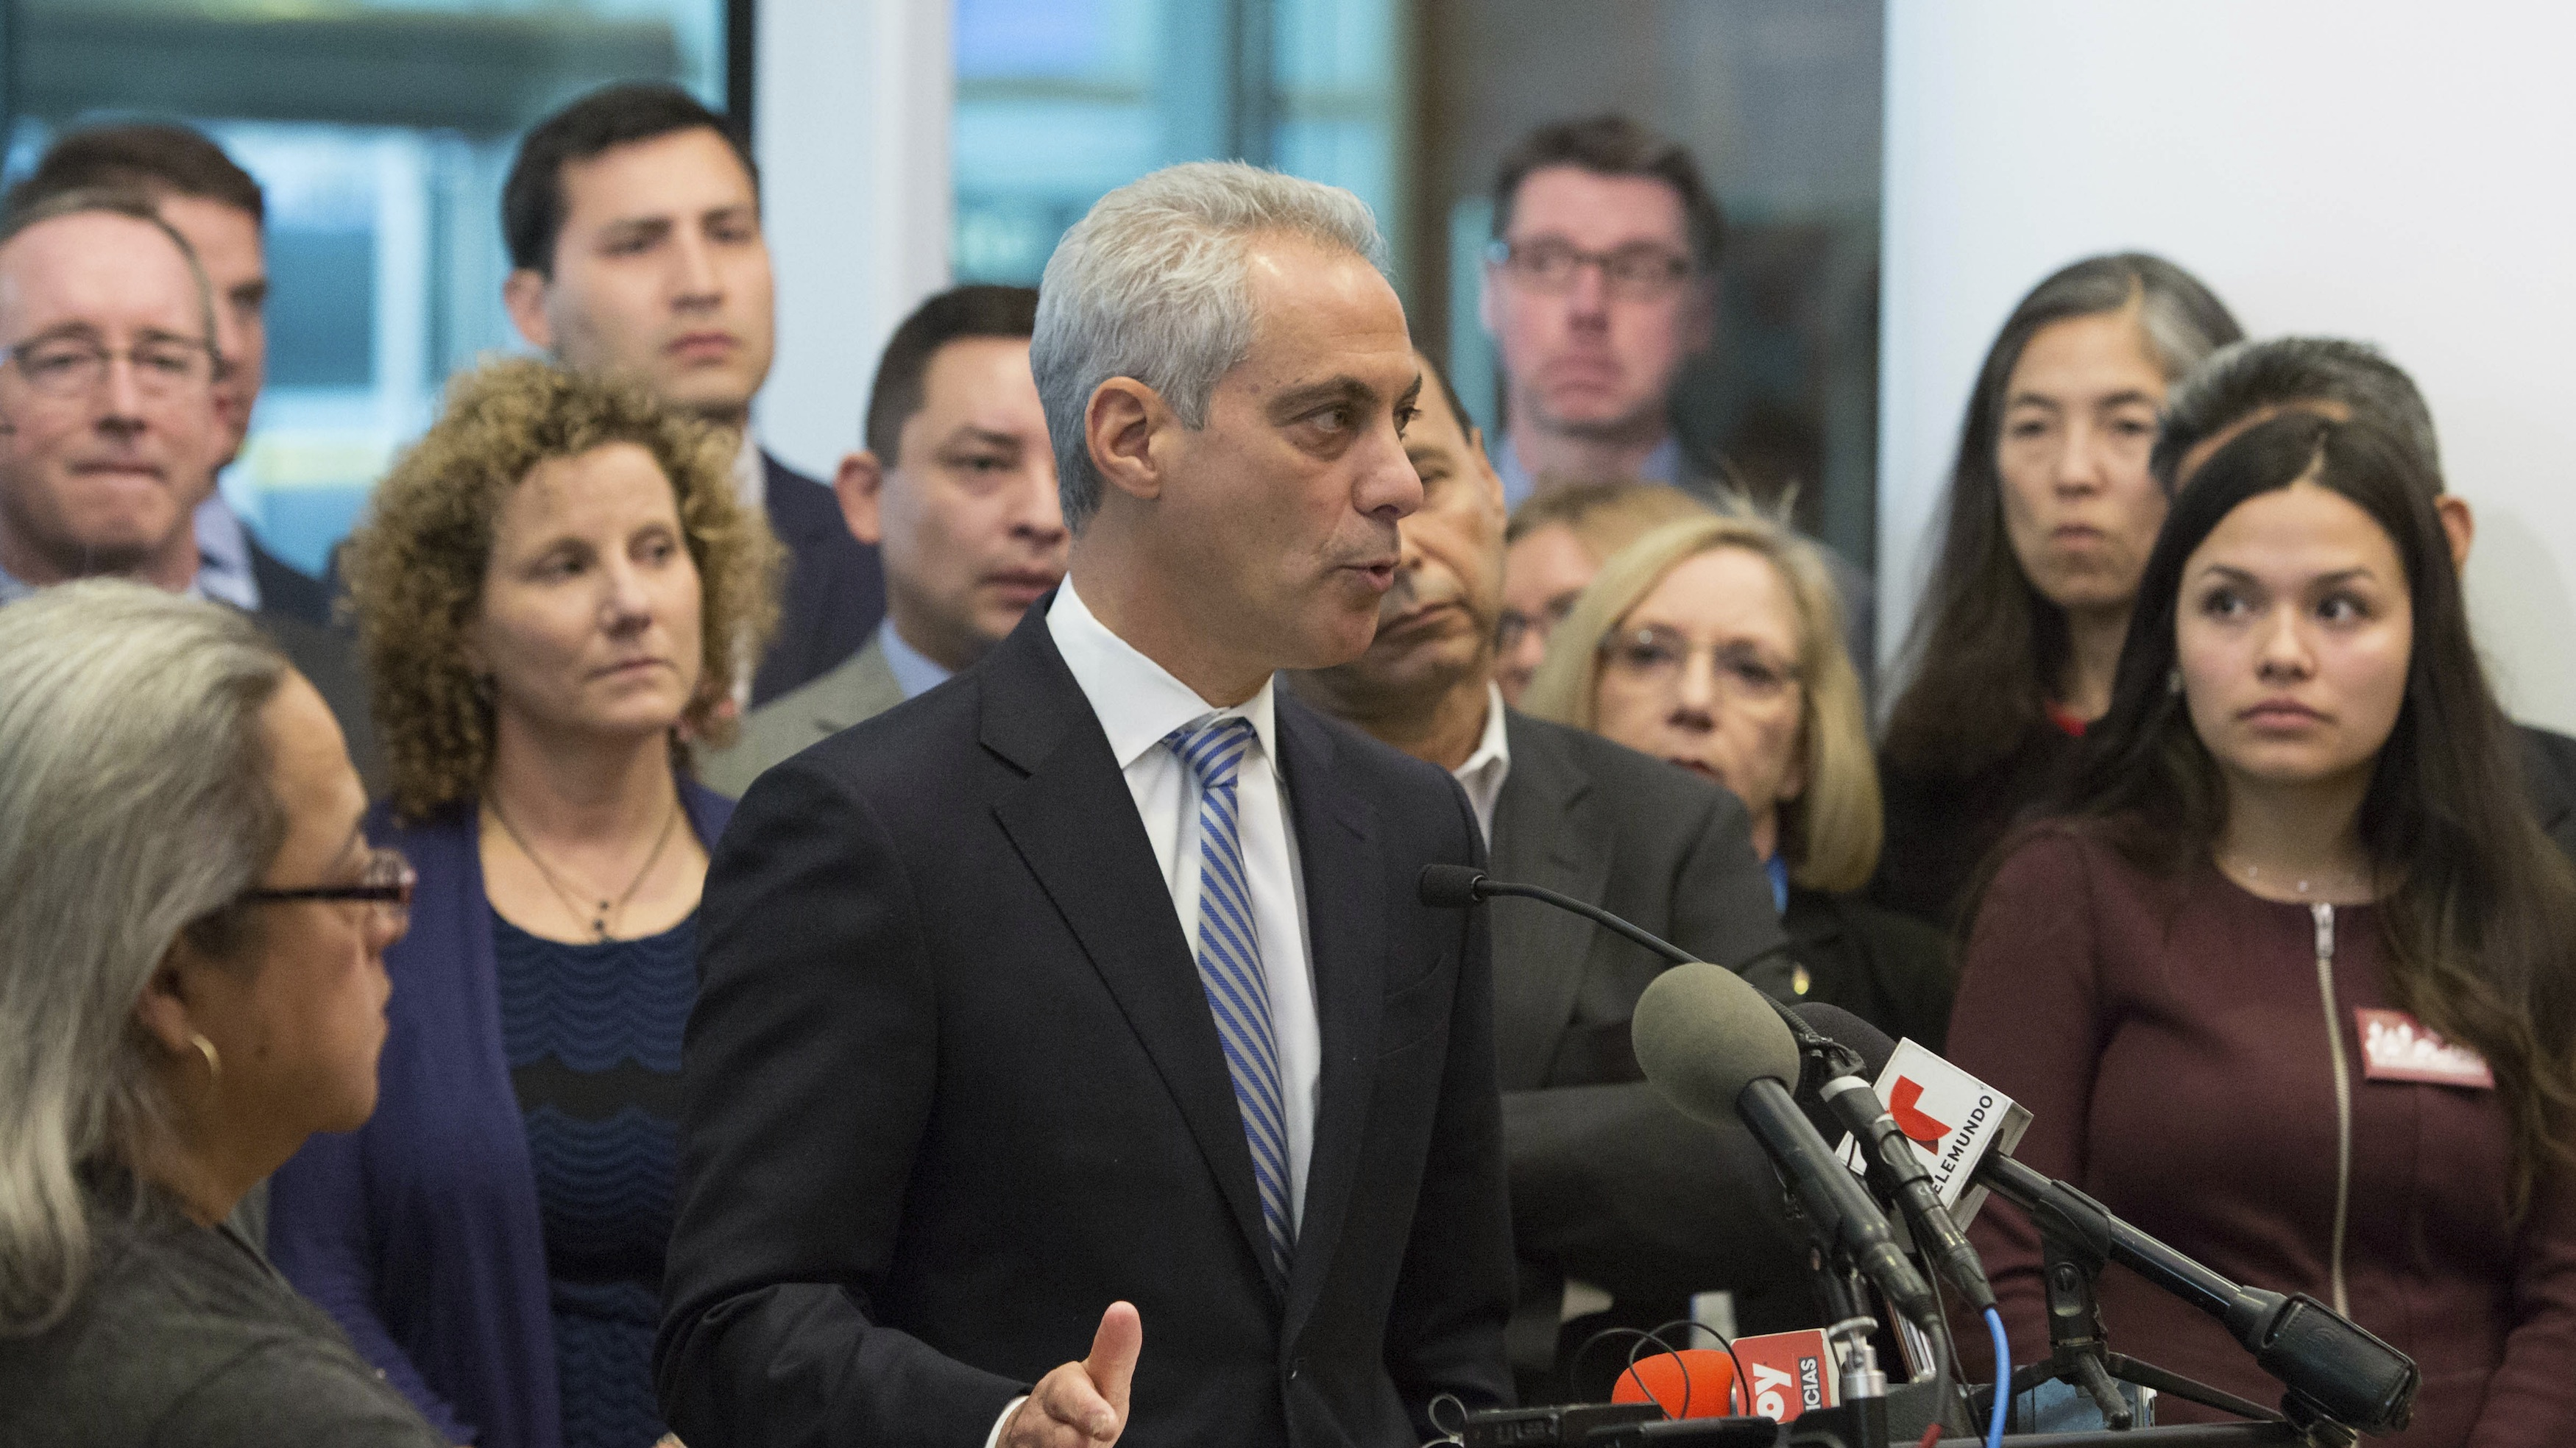 Mayor Emanuel says Chicago will remain a sanctuary city in the age of Trump.